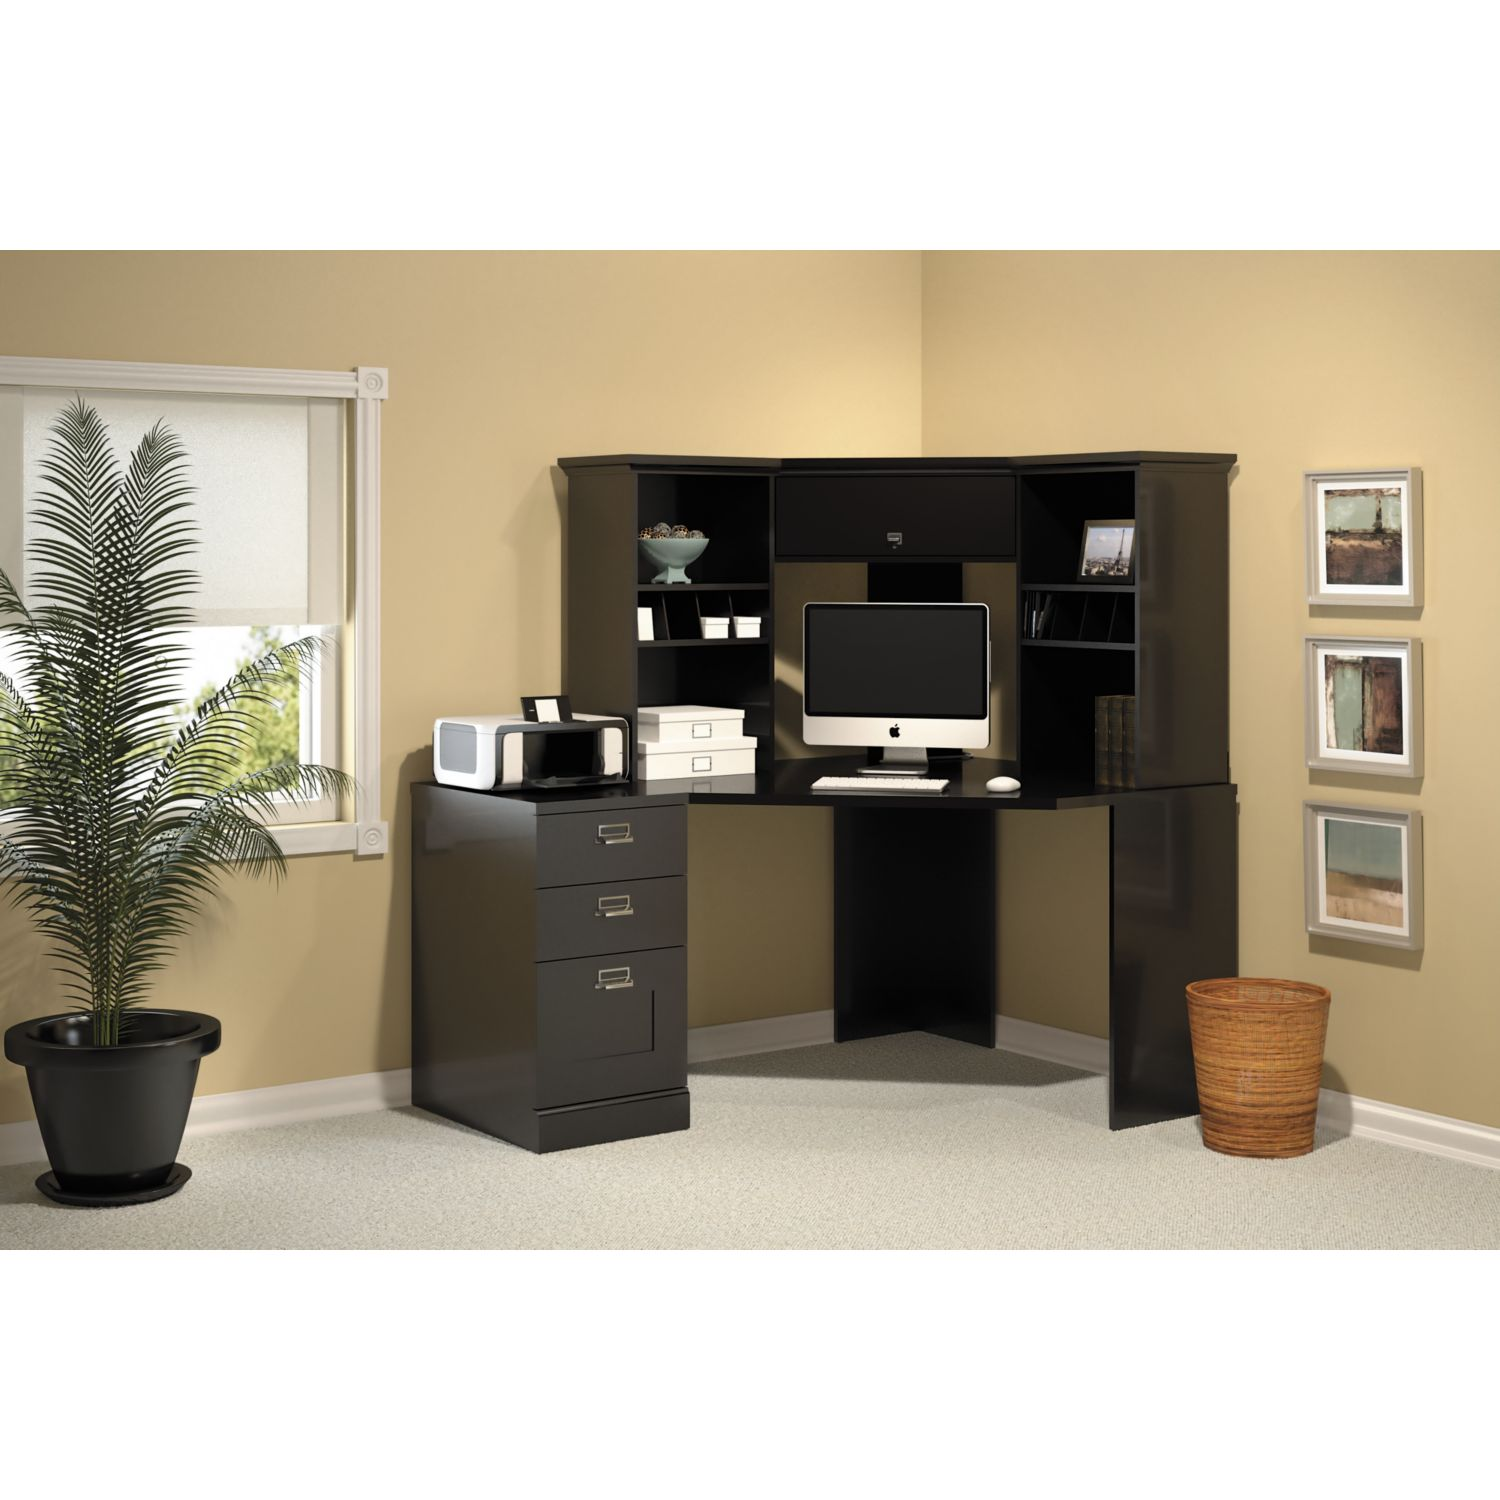 Stockport Corner Desk with Hutch and 3 Drawer File Cabinet in Black - Free  Shipping Today - Overstock.com - 15250939